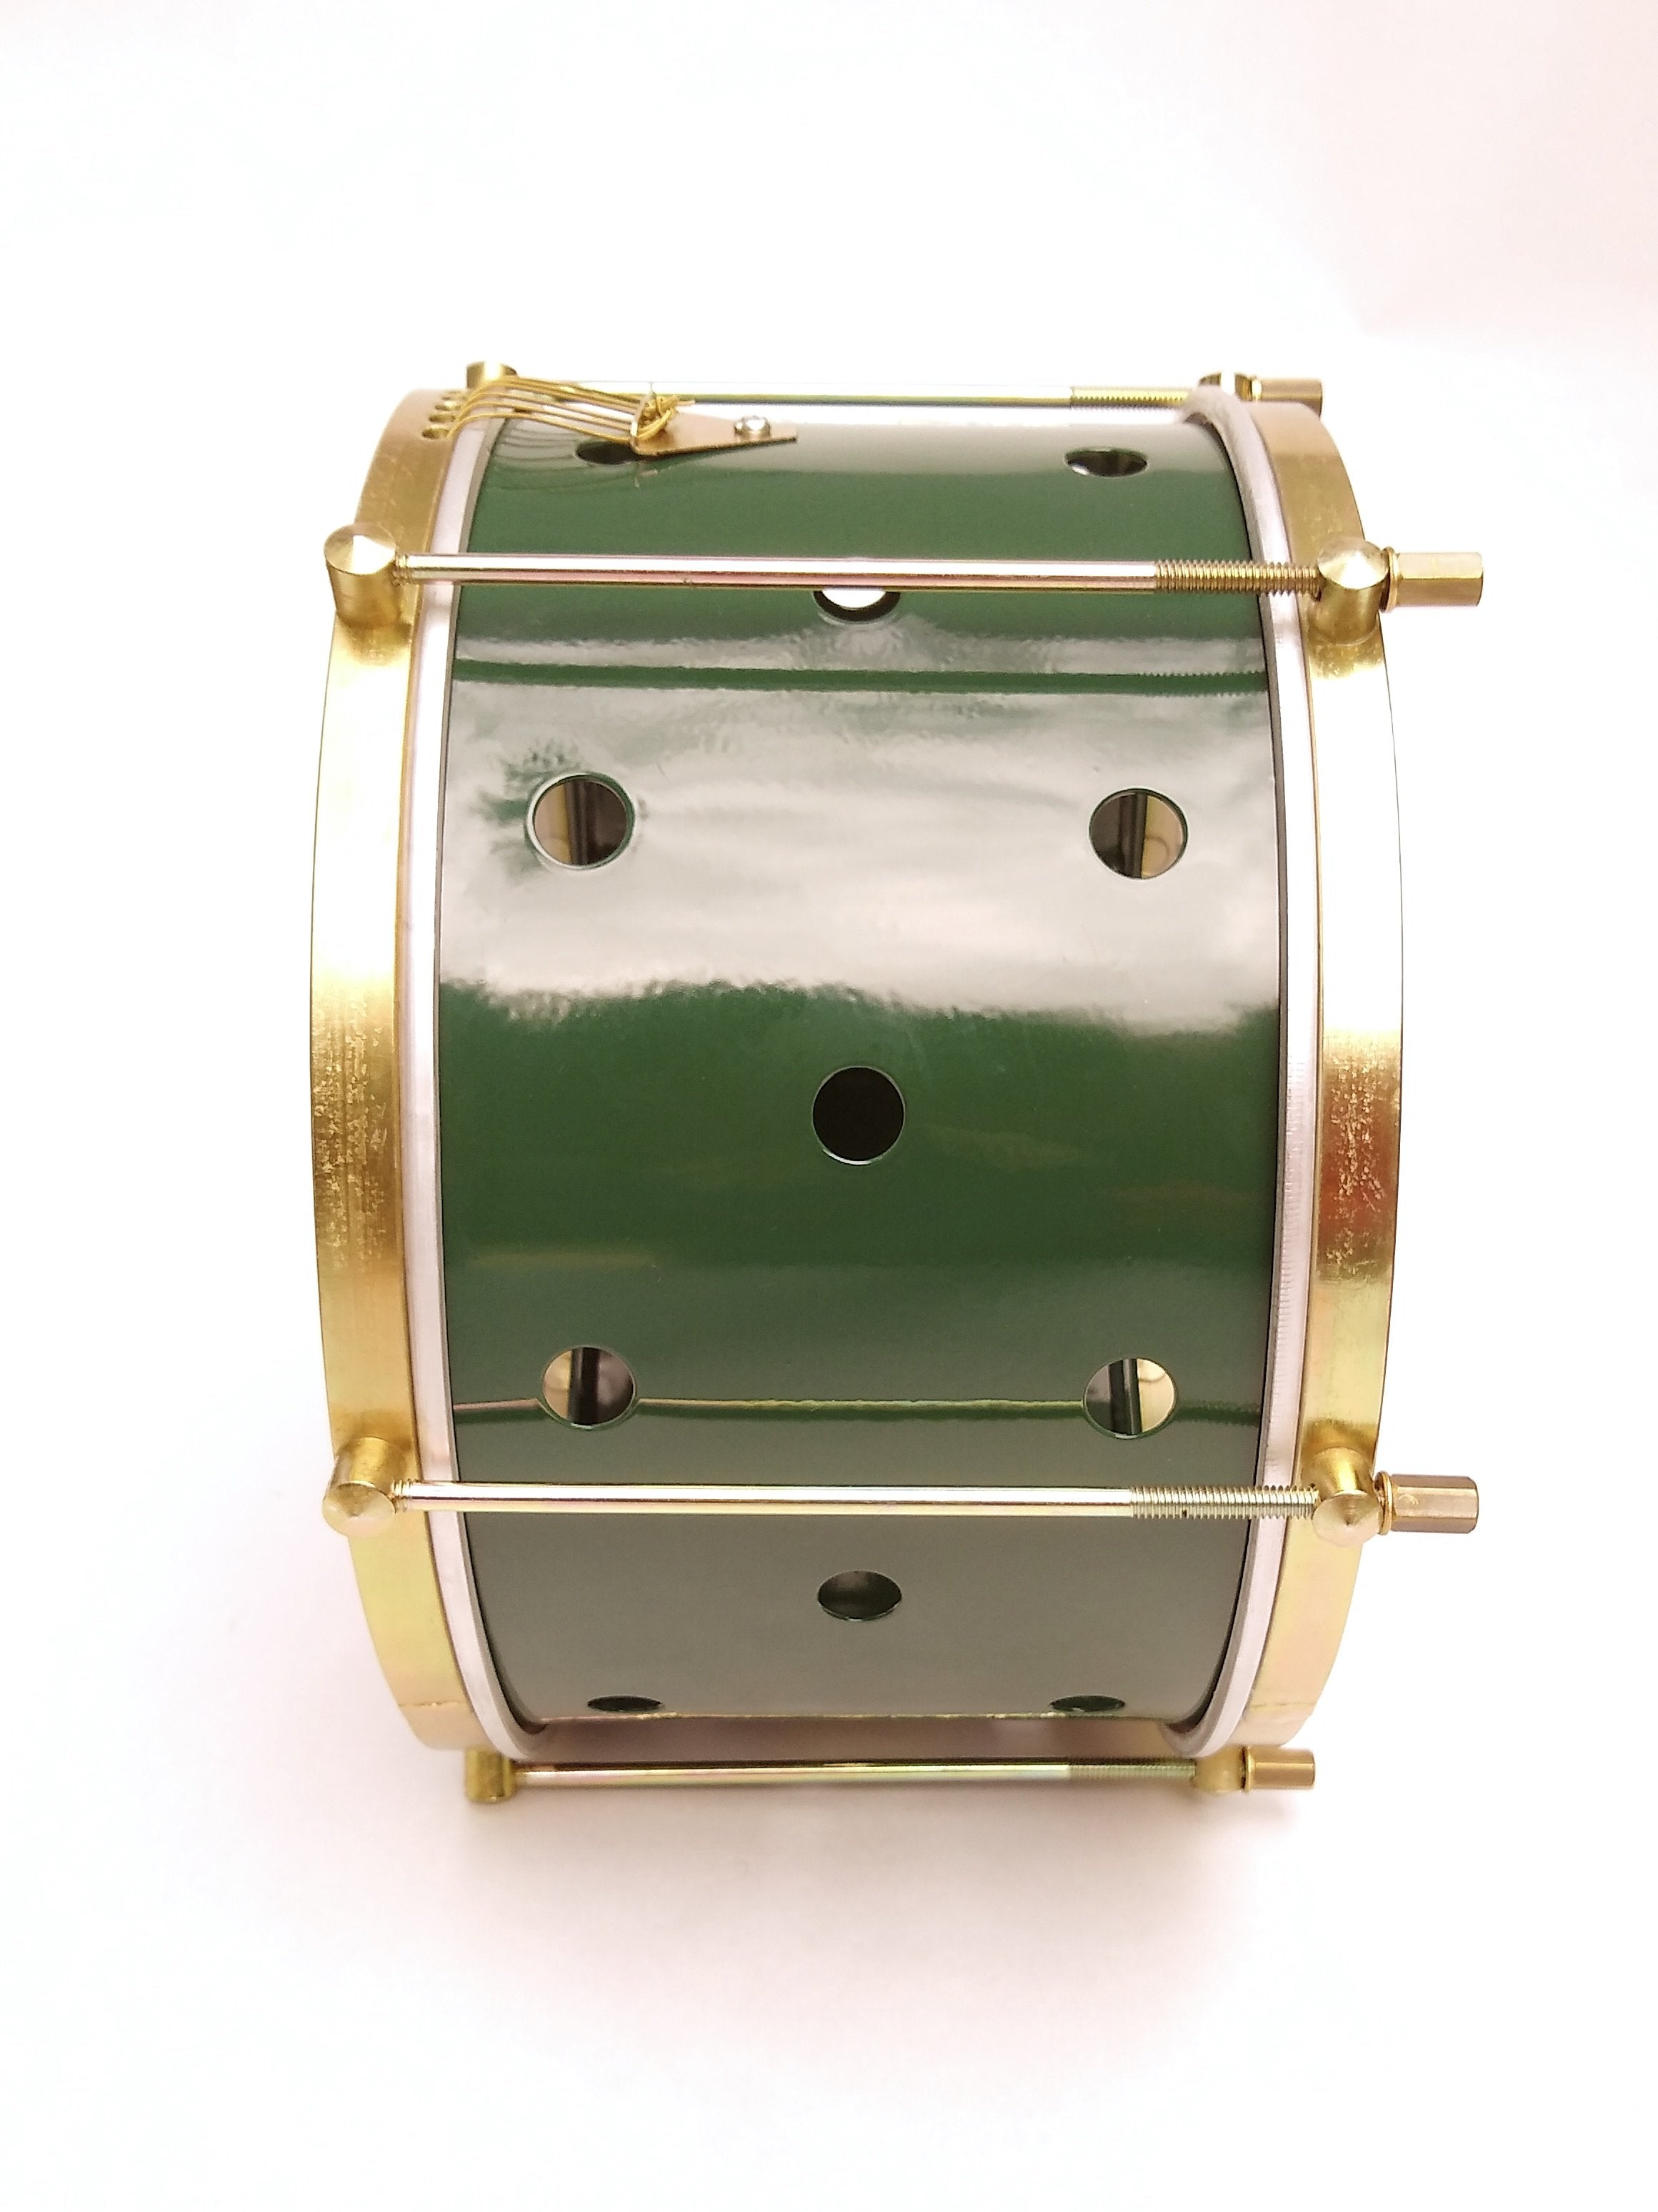 Brazilian batucada drum with brass colored hardware, six strings, clear drum heads and a green shell. The green shell has small holes drilled into it.